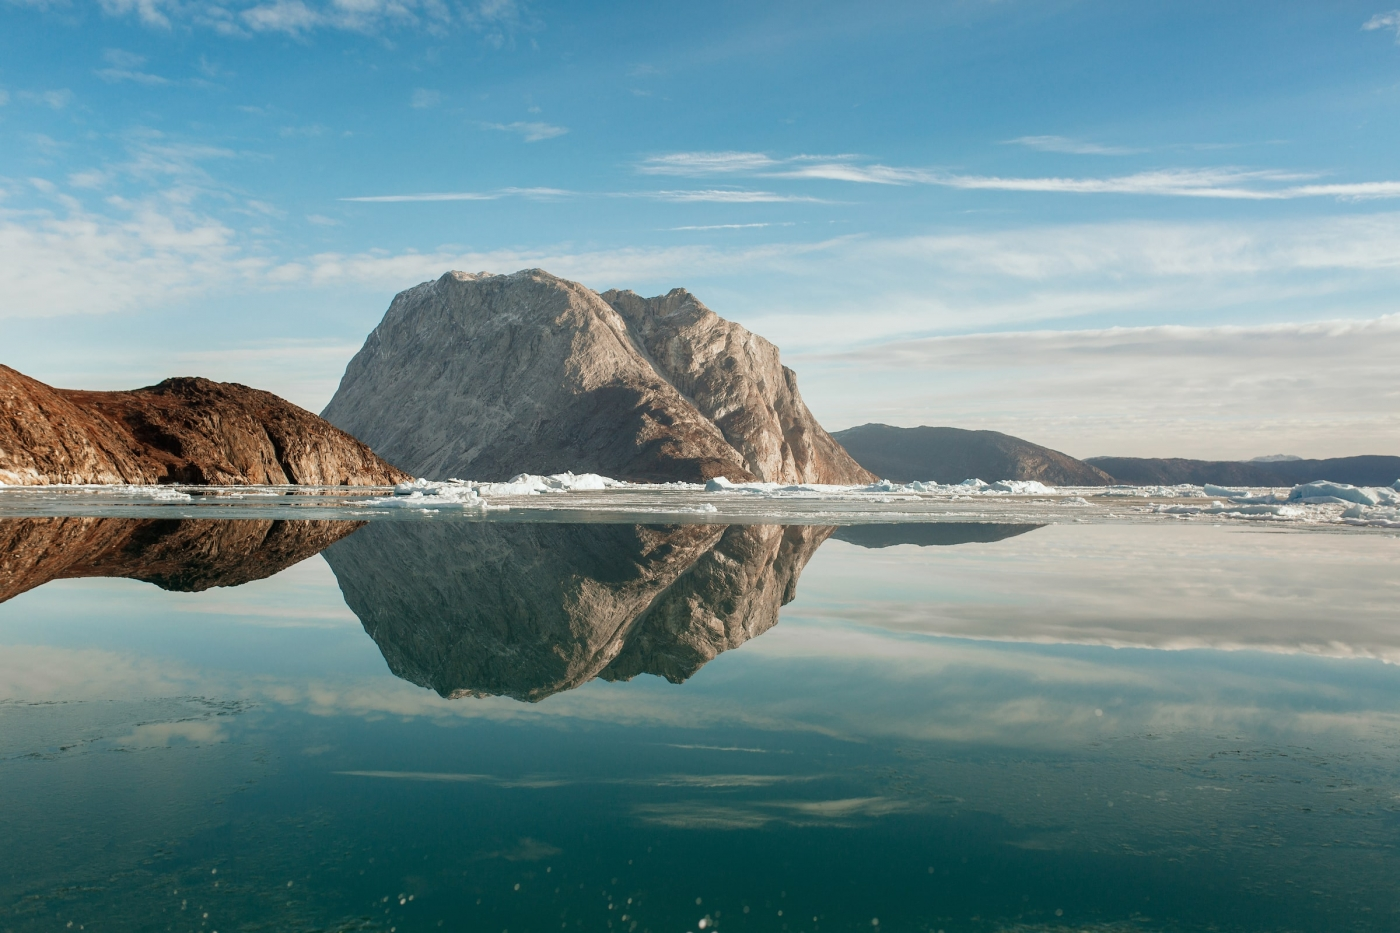 Mountains being reflected perfectly on clear water in the Nuuk fjord in Greenland. Photo by Rebecca Gustafsson - Visit Greenland